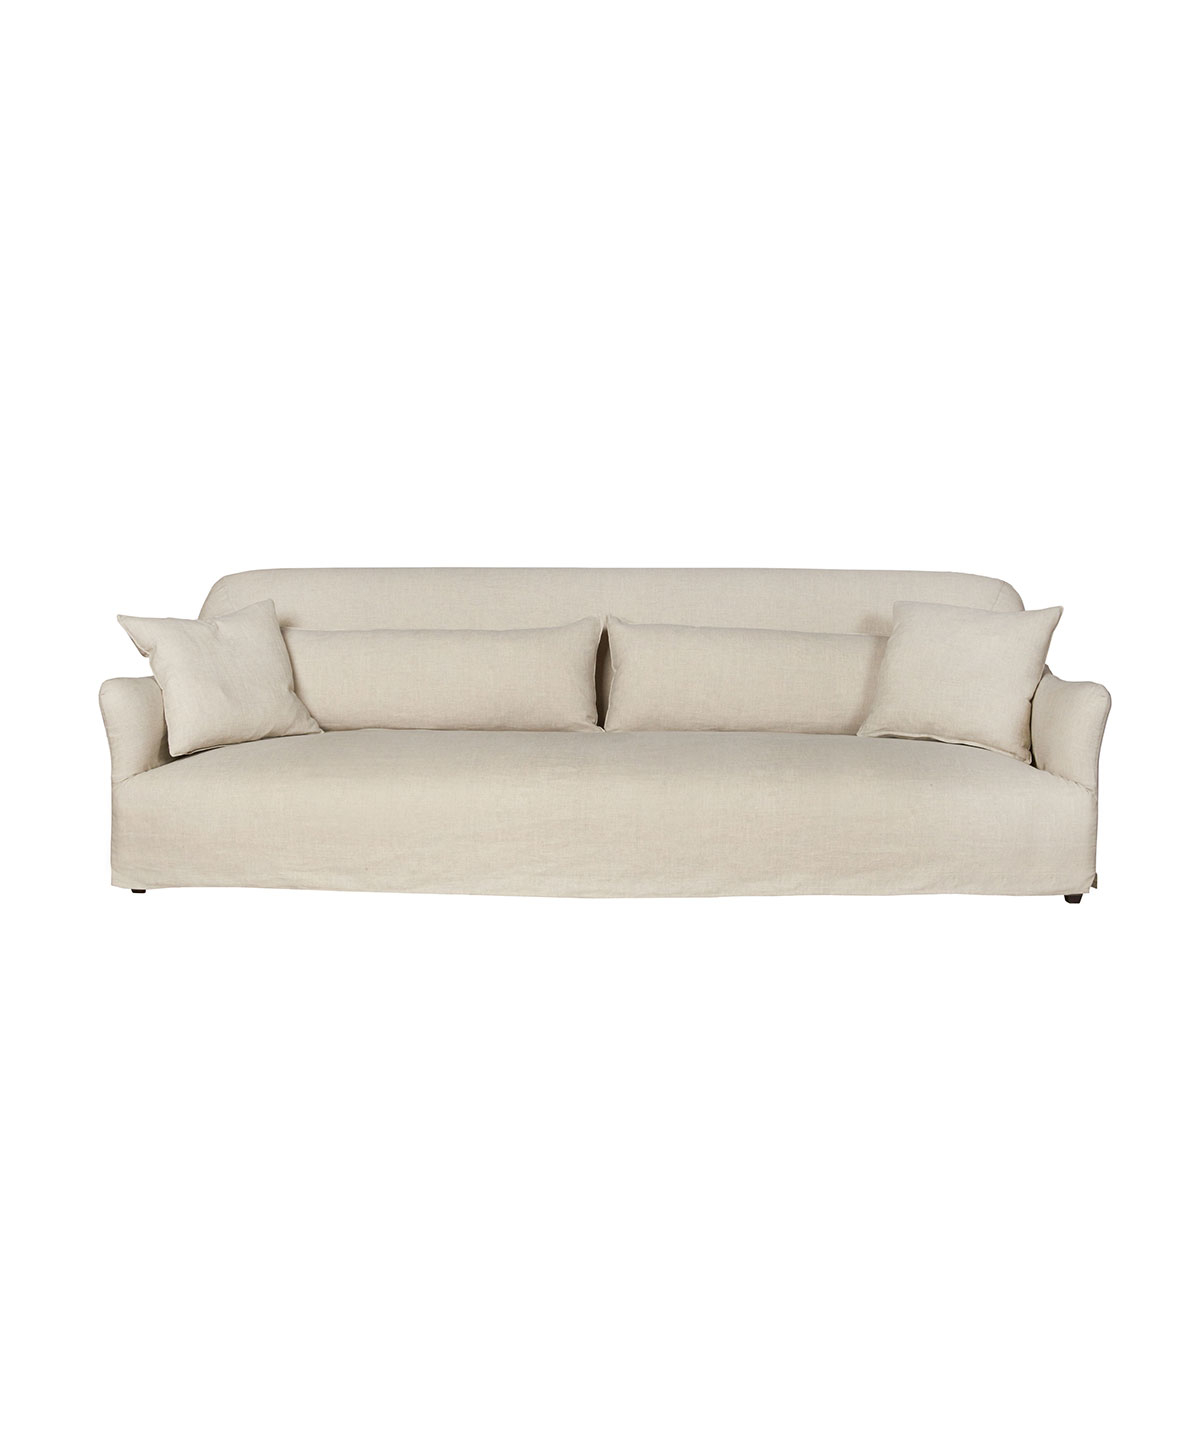 Hazel Slipcovered Sofa